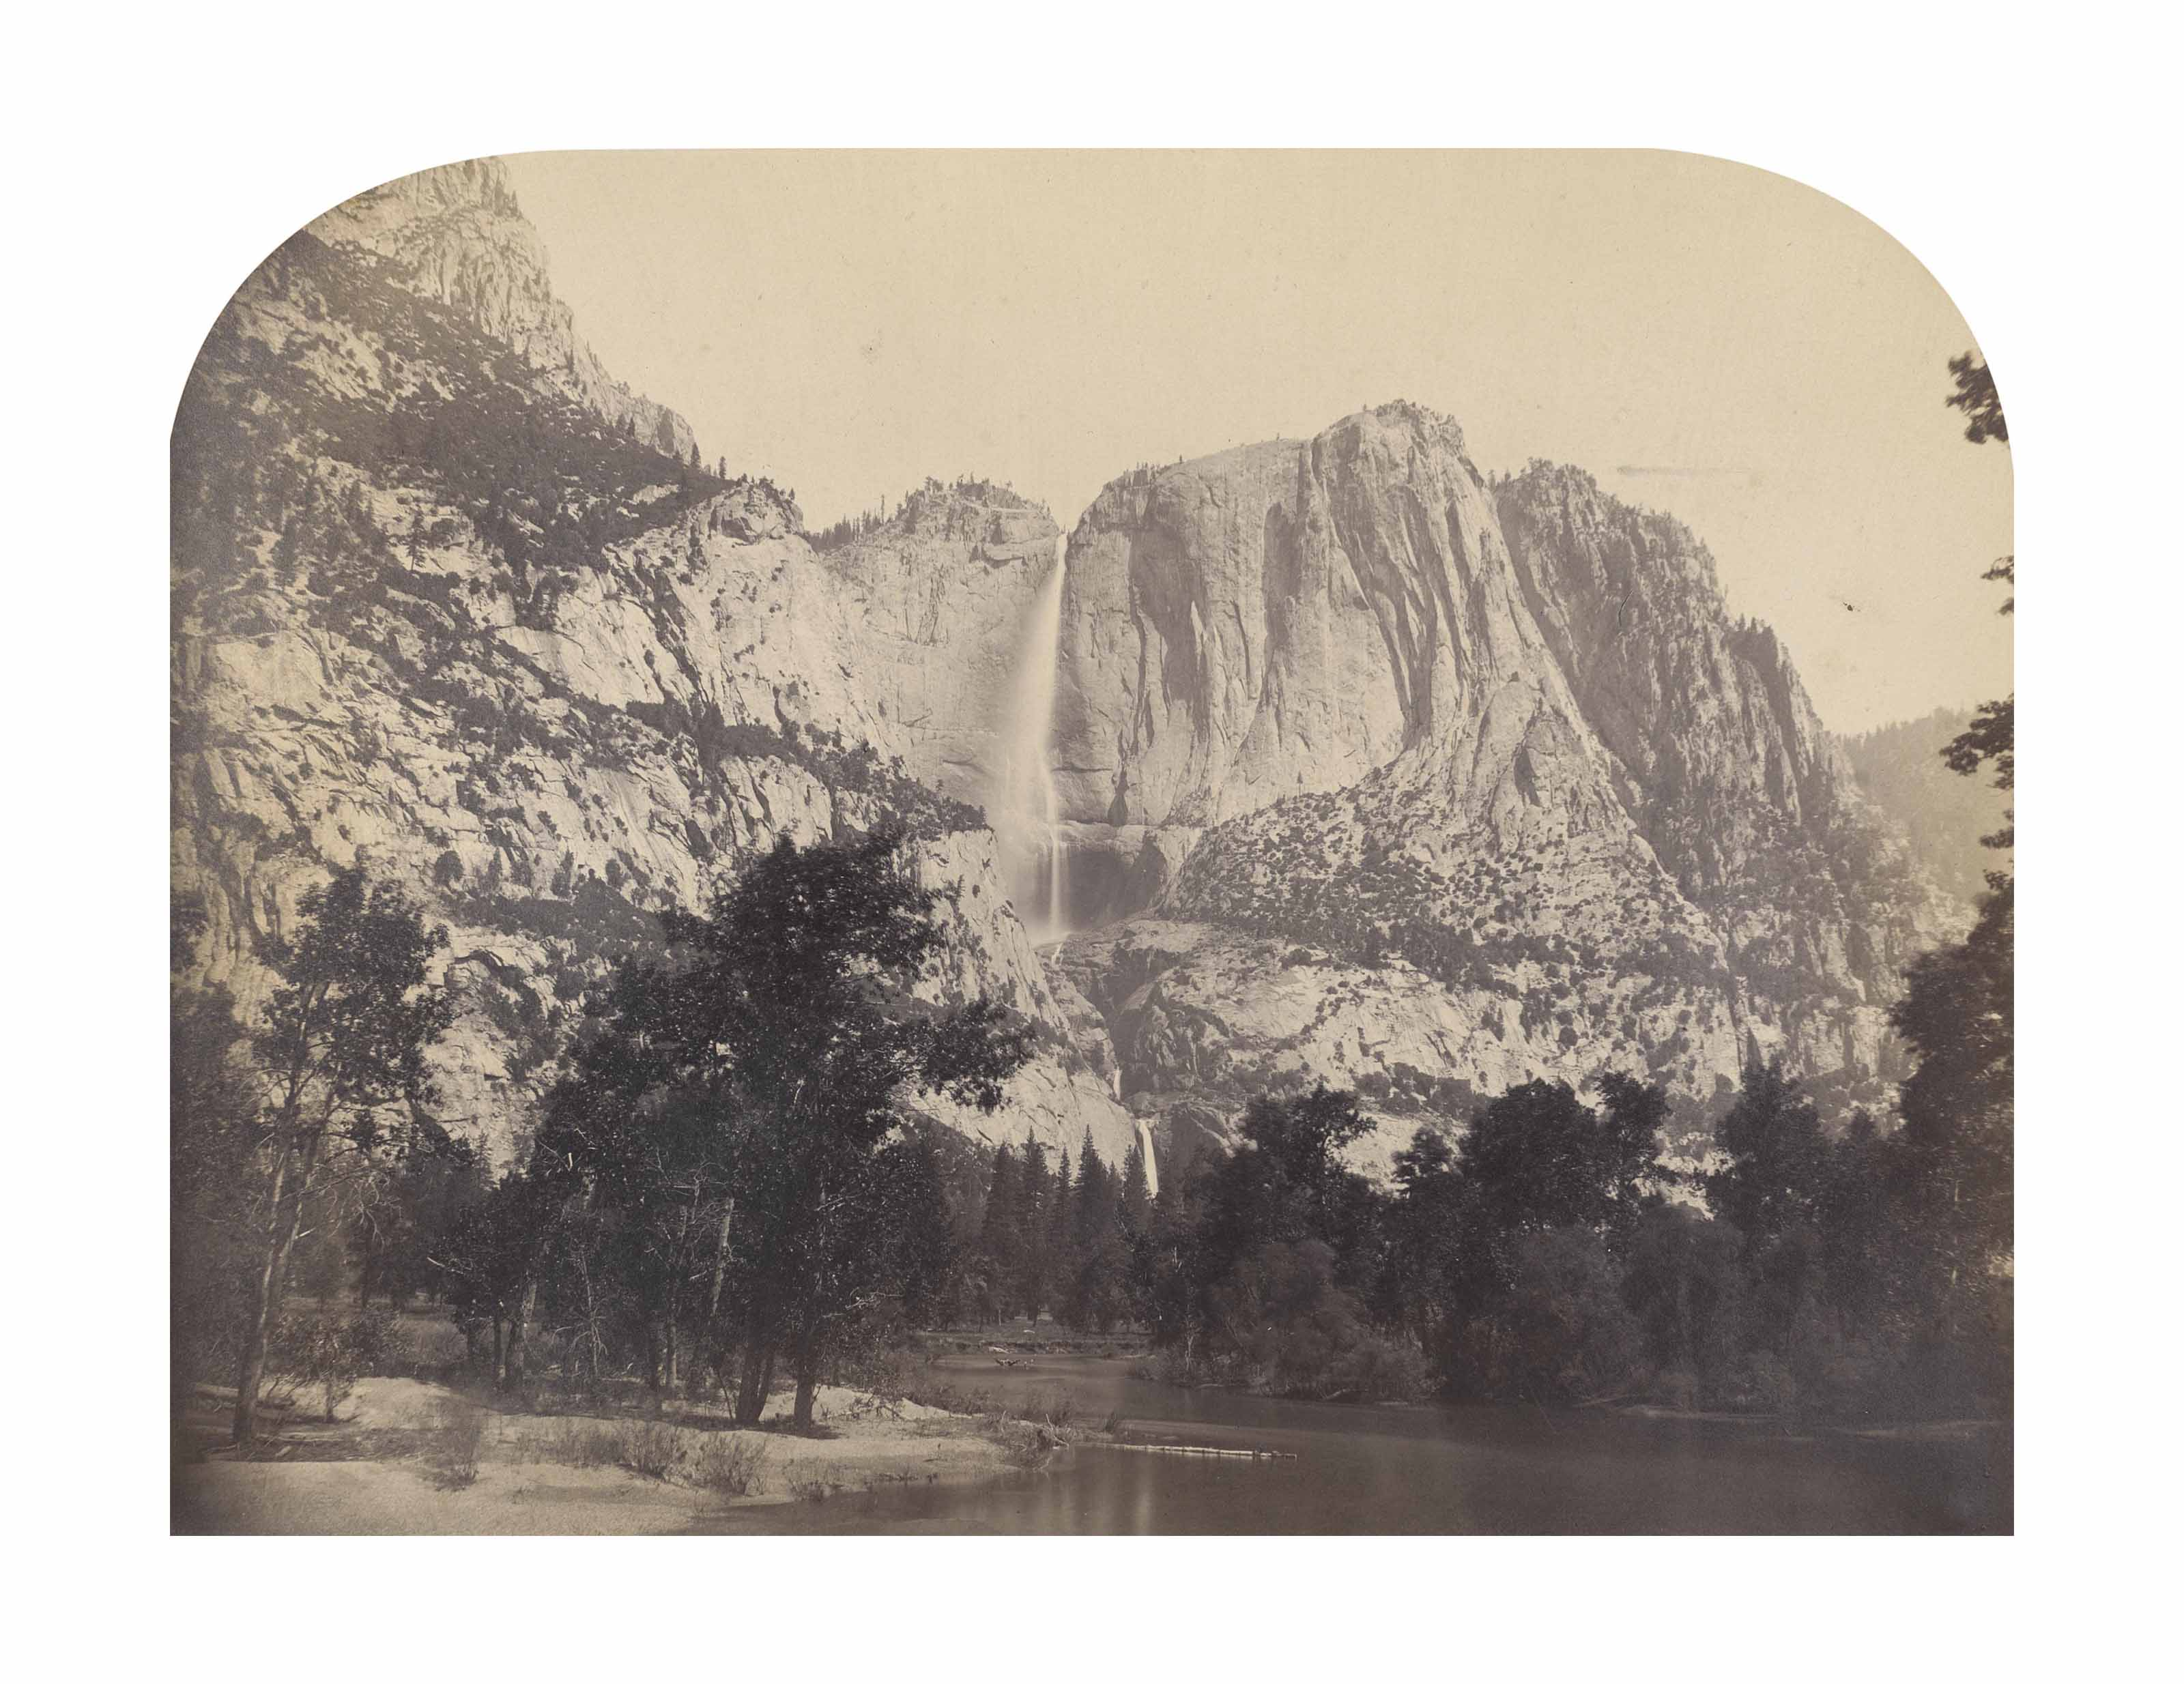 Horsetail Fall, Yosemite, 1861